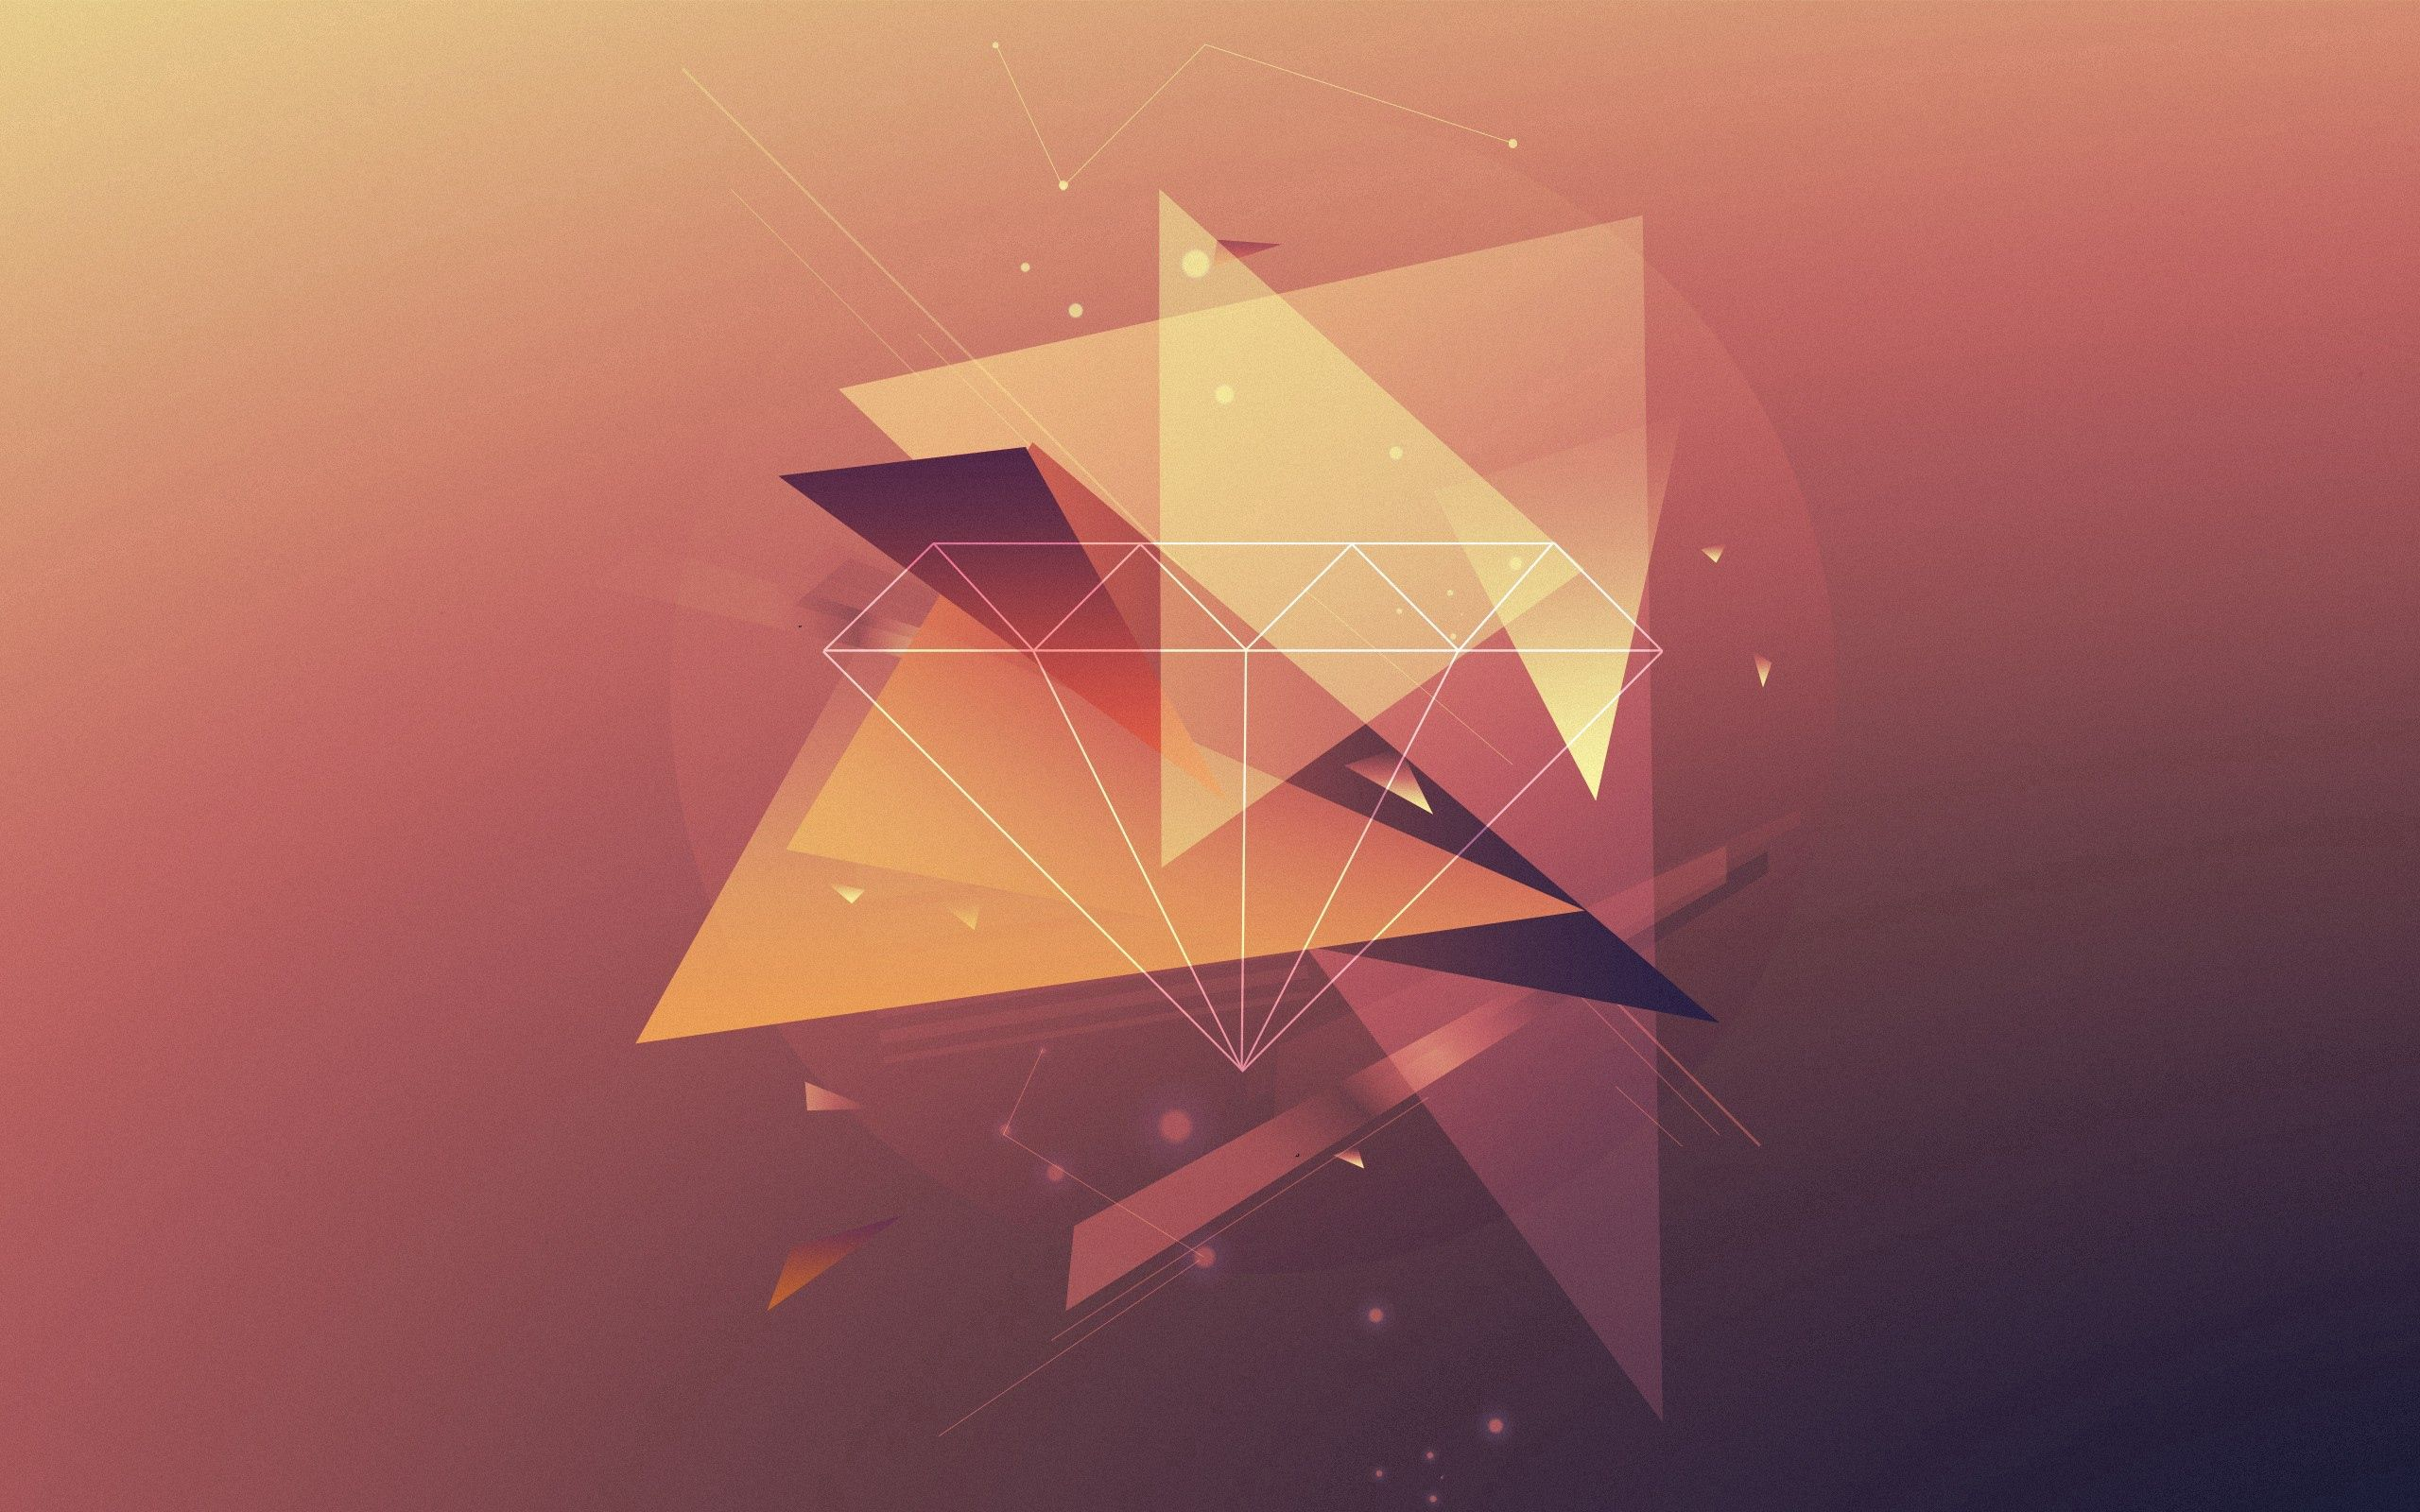 125485 download wallpaper Abstract, Triangles, Lines, Faded, Background screensavers and pictures for free